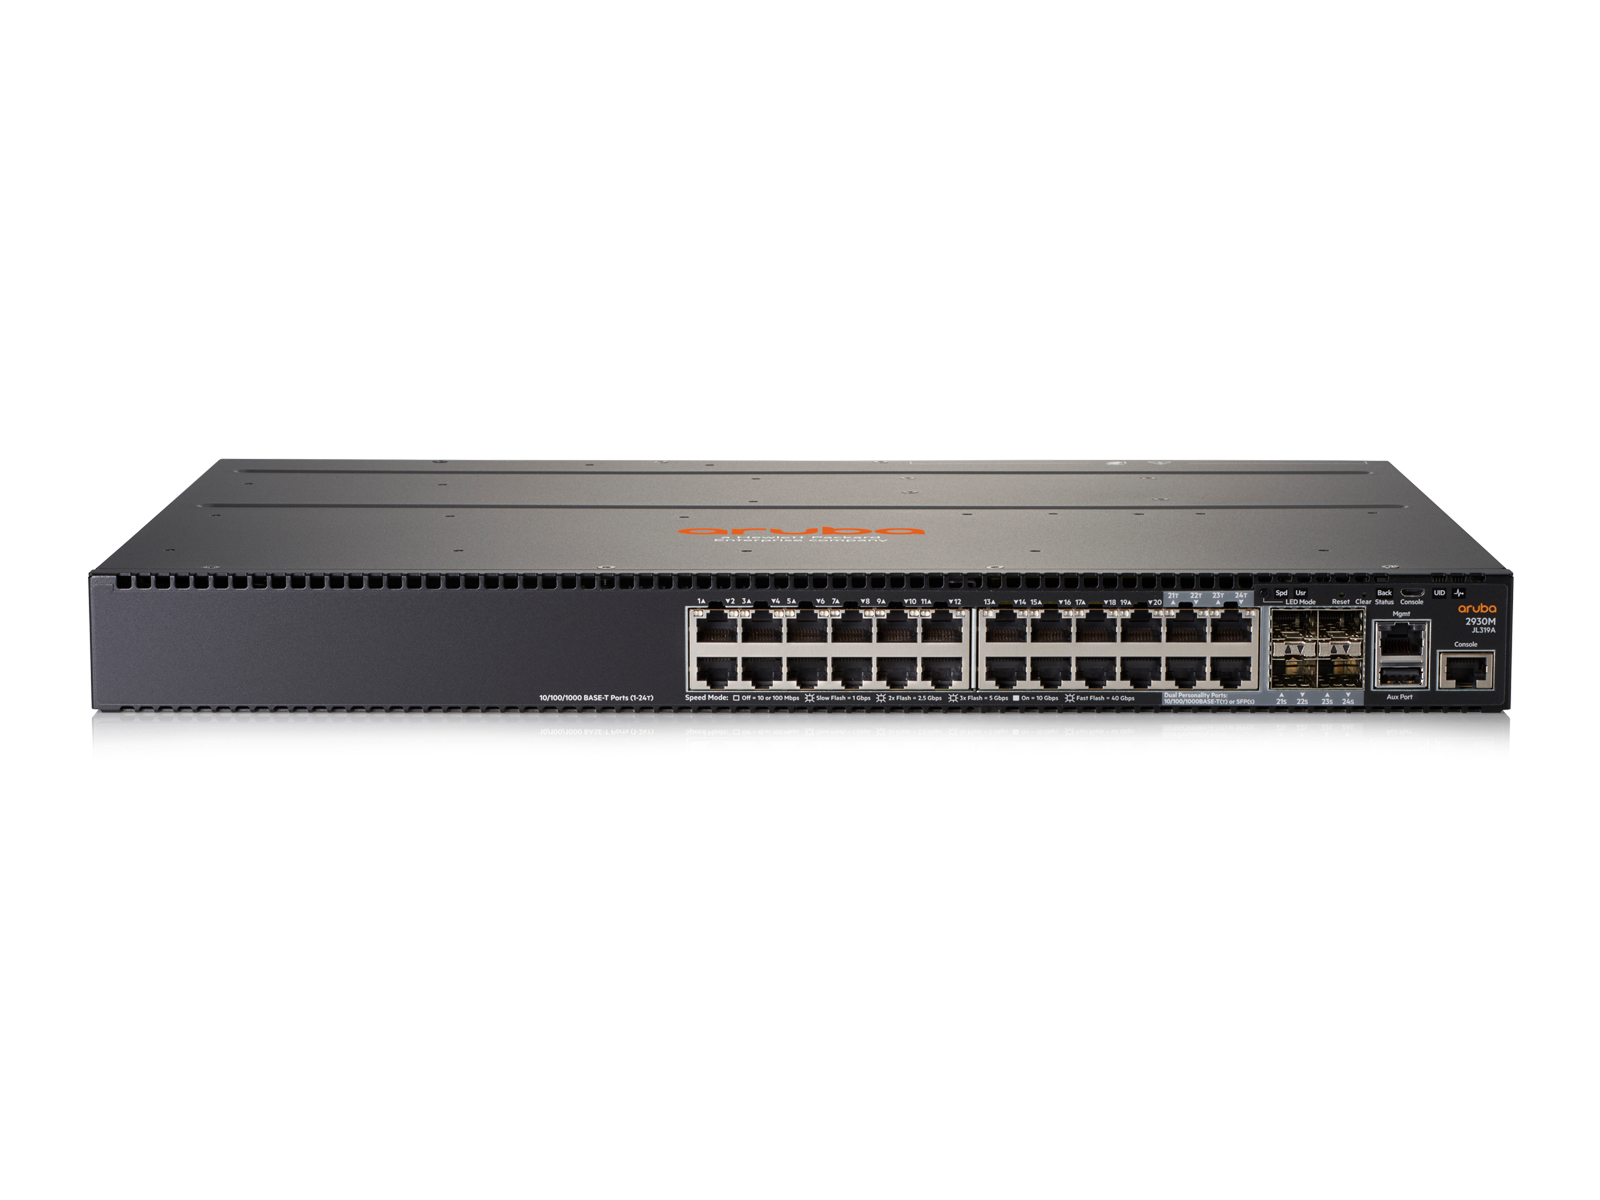 HPE JL319A ARUBA 2930M 24G 1-SLOT MANAGED L3 GIGABIT ETHERNET (10/100/1000) 1U GREY